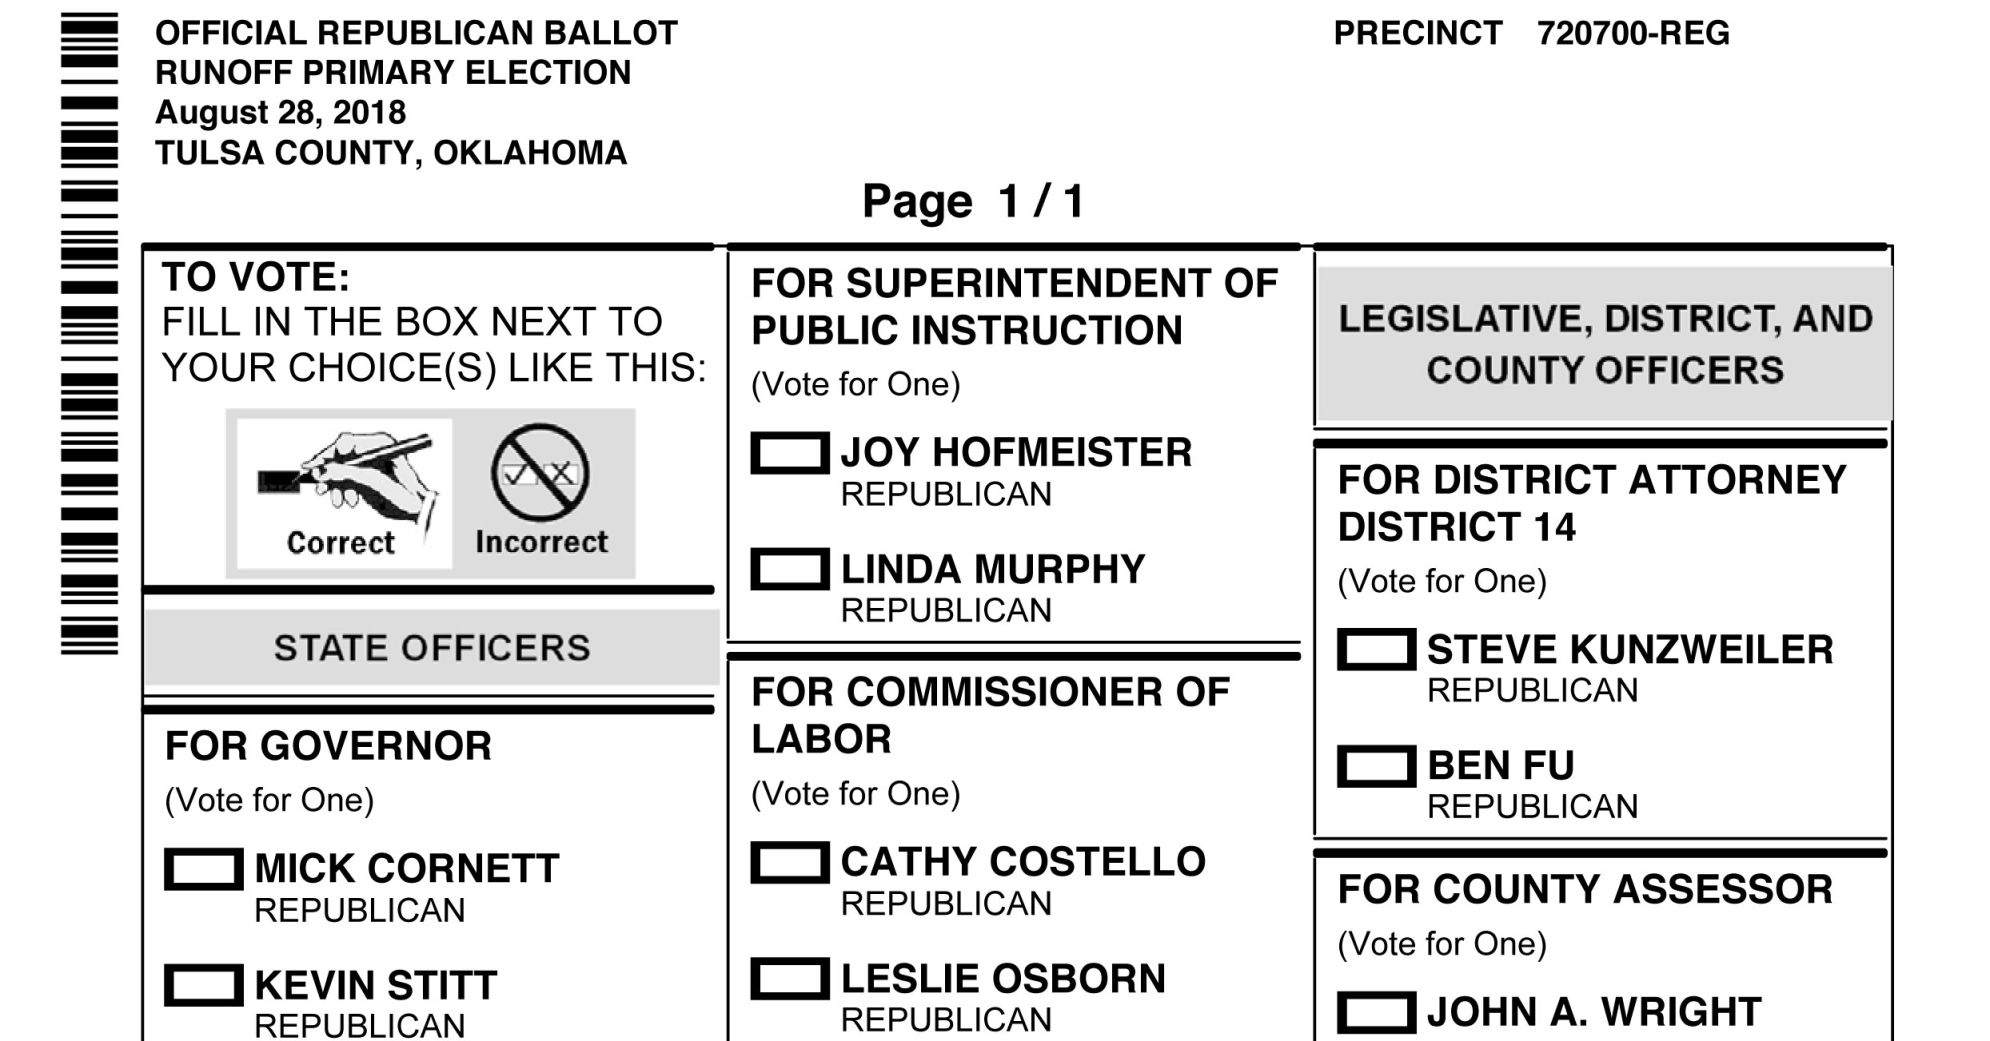 photo regarding Democrat or Republican Quiz for Students Printable called Order your pattern ballot for the Aug. 28 runoff election